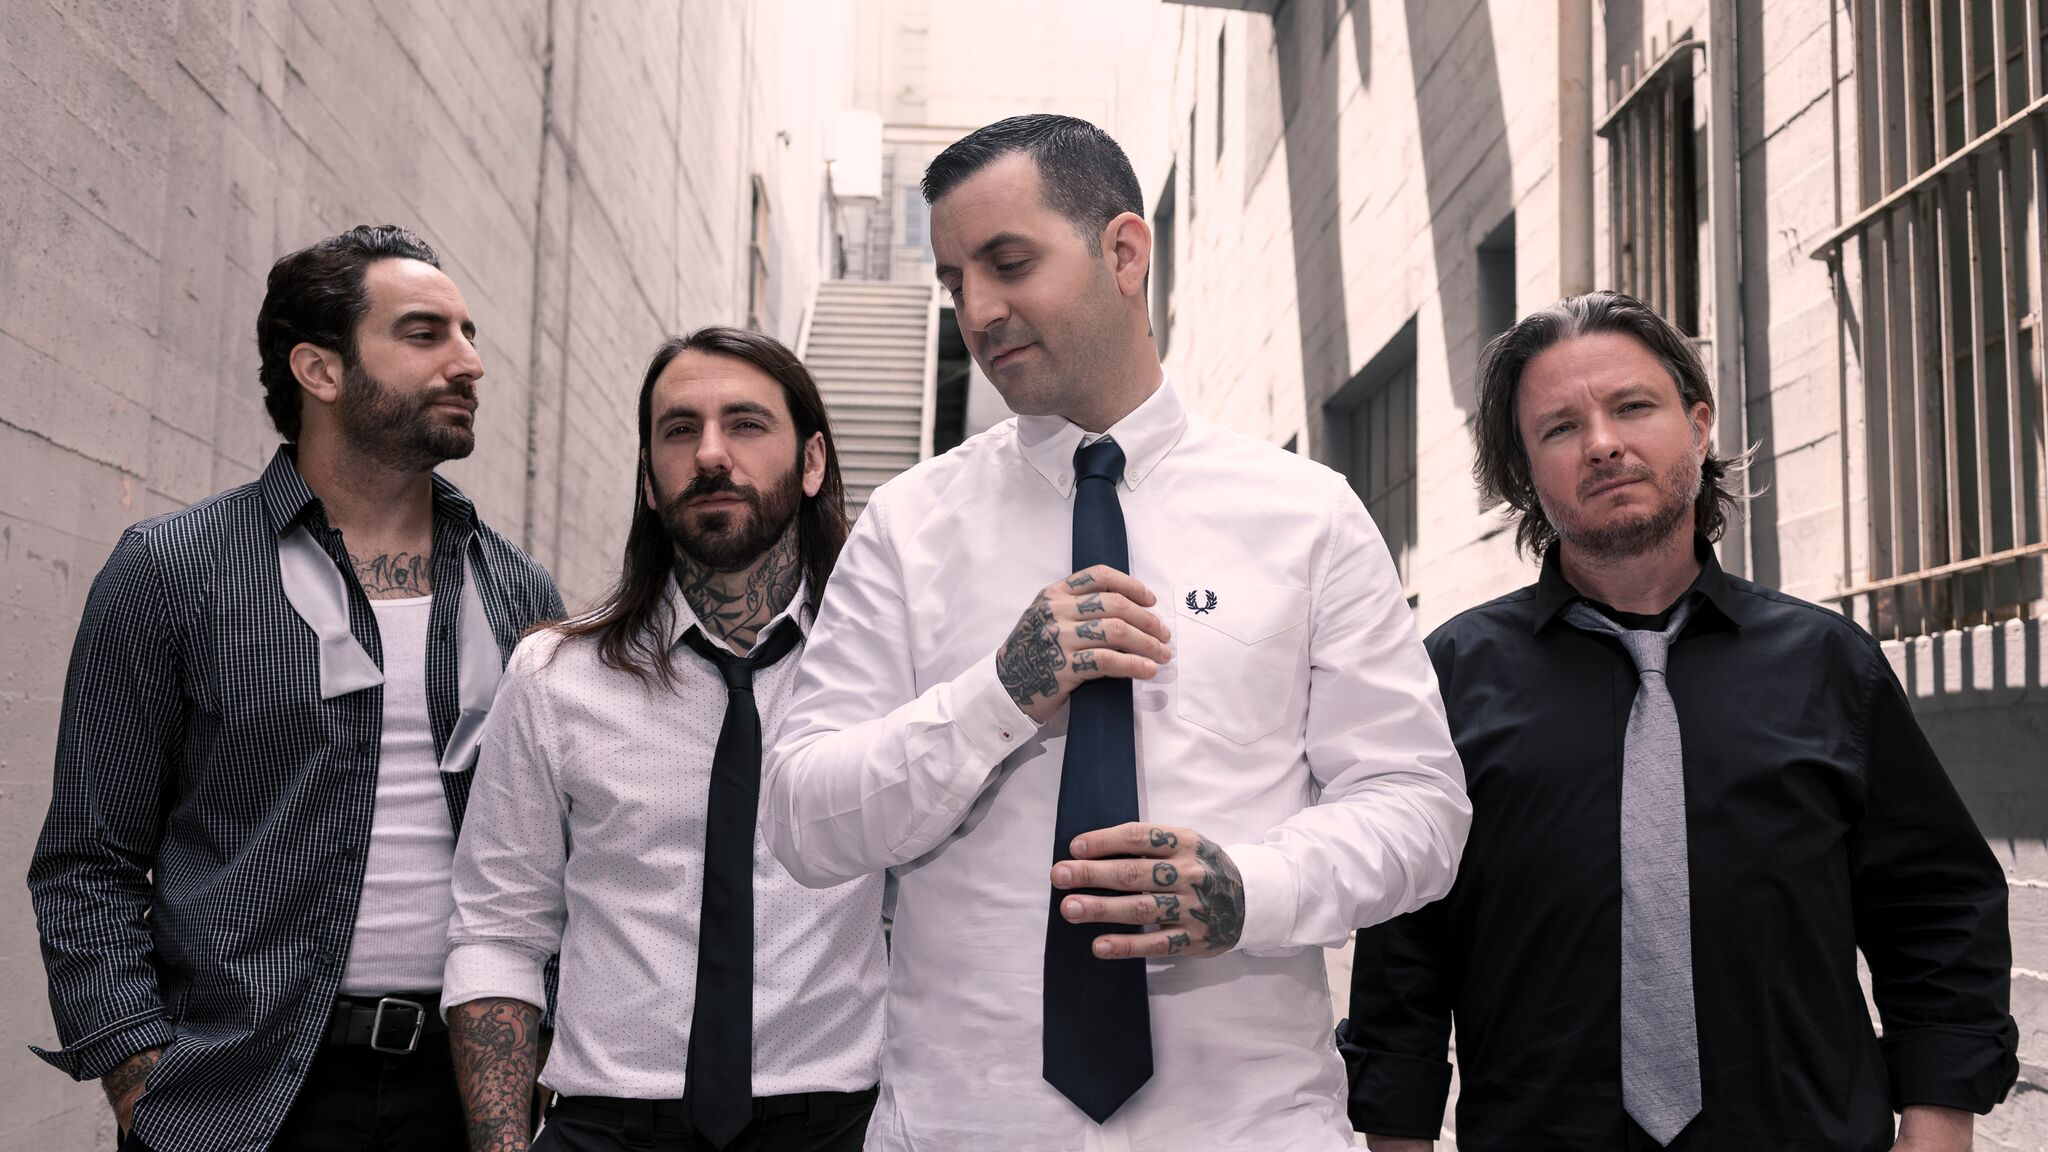 INTERVIEW: Jack O'Shea on Bayside's 'Acoustic Volume 2' and full-band acoustic tour